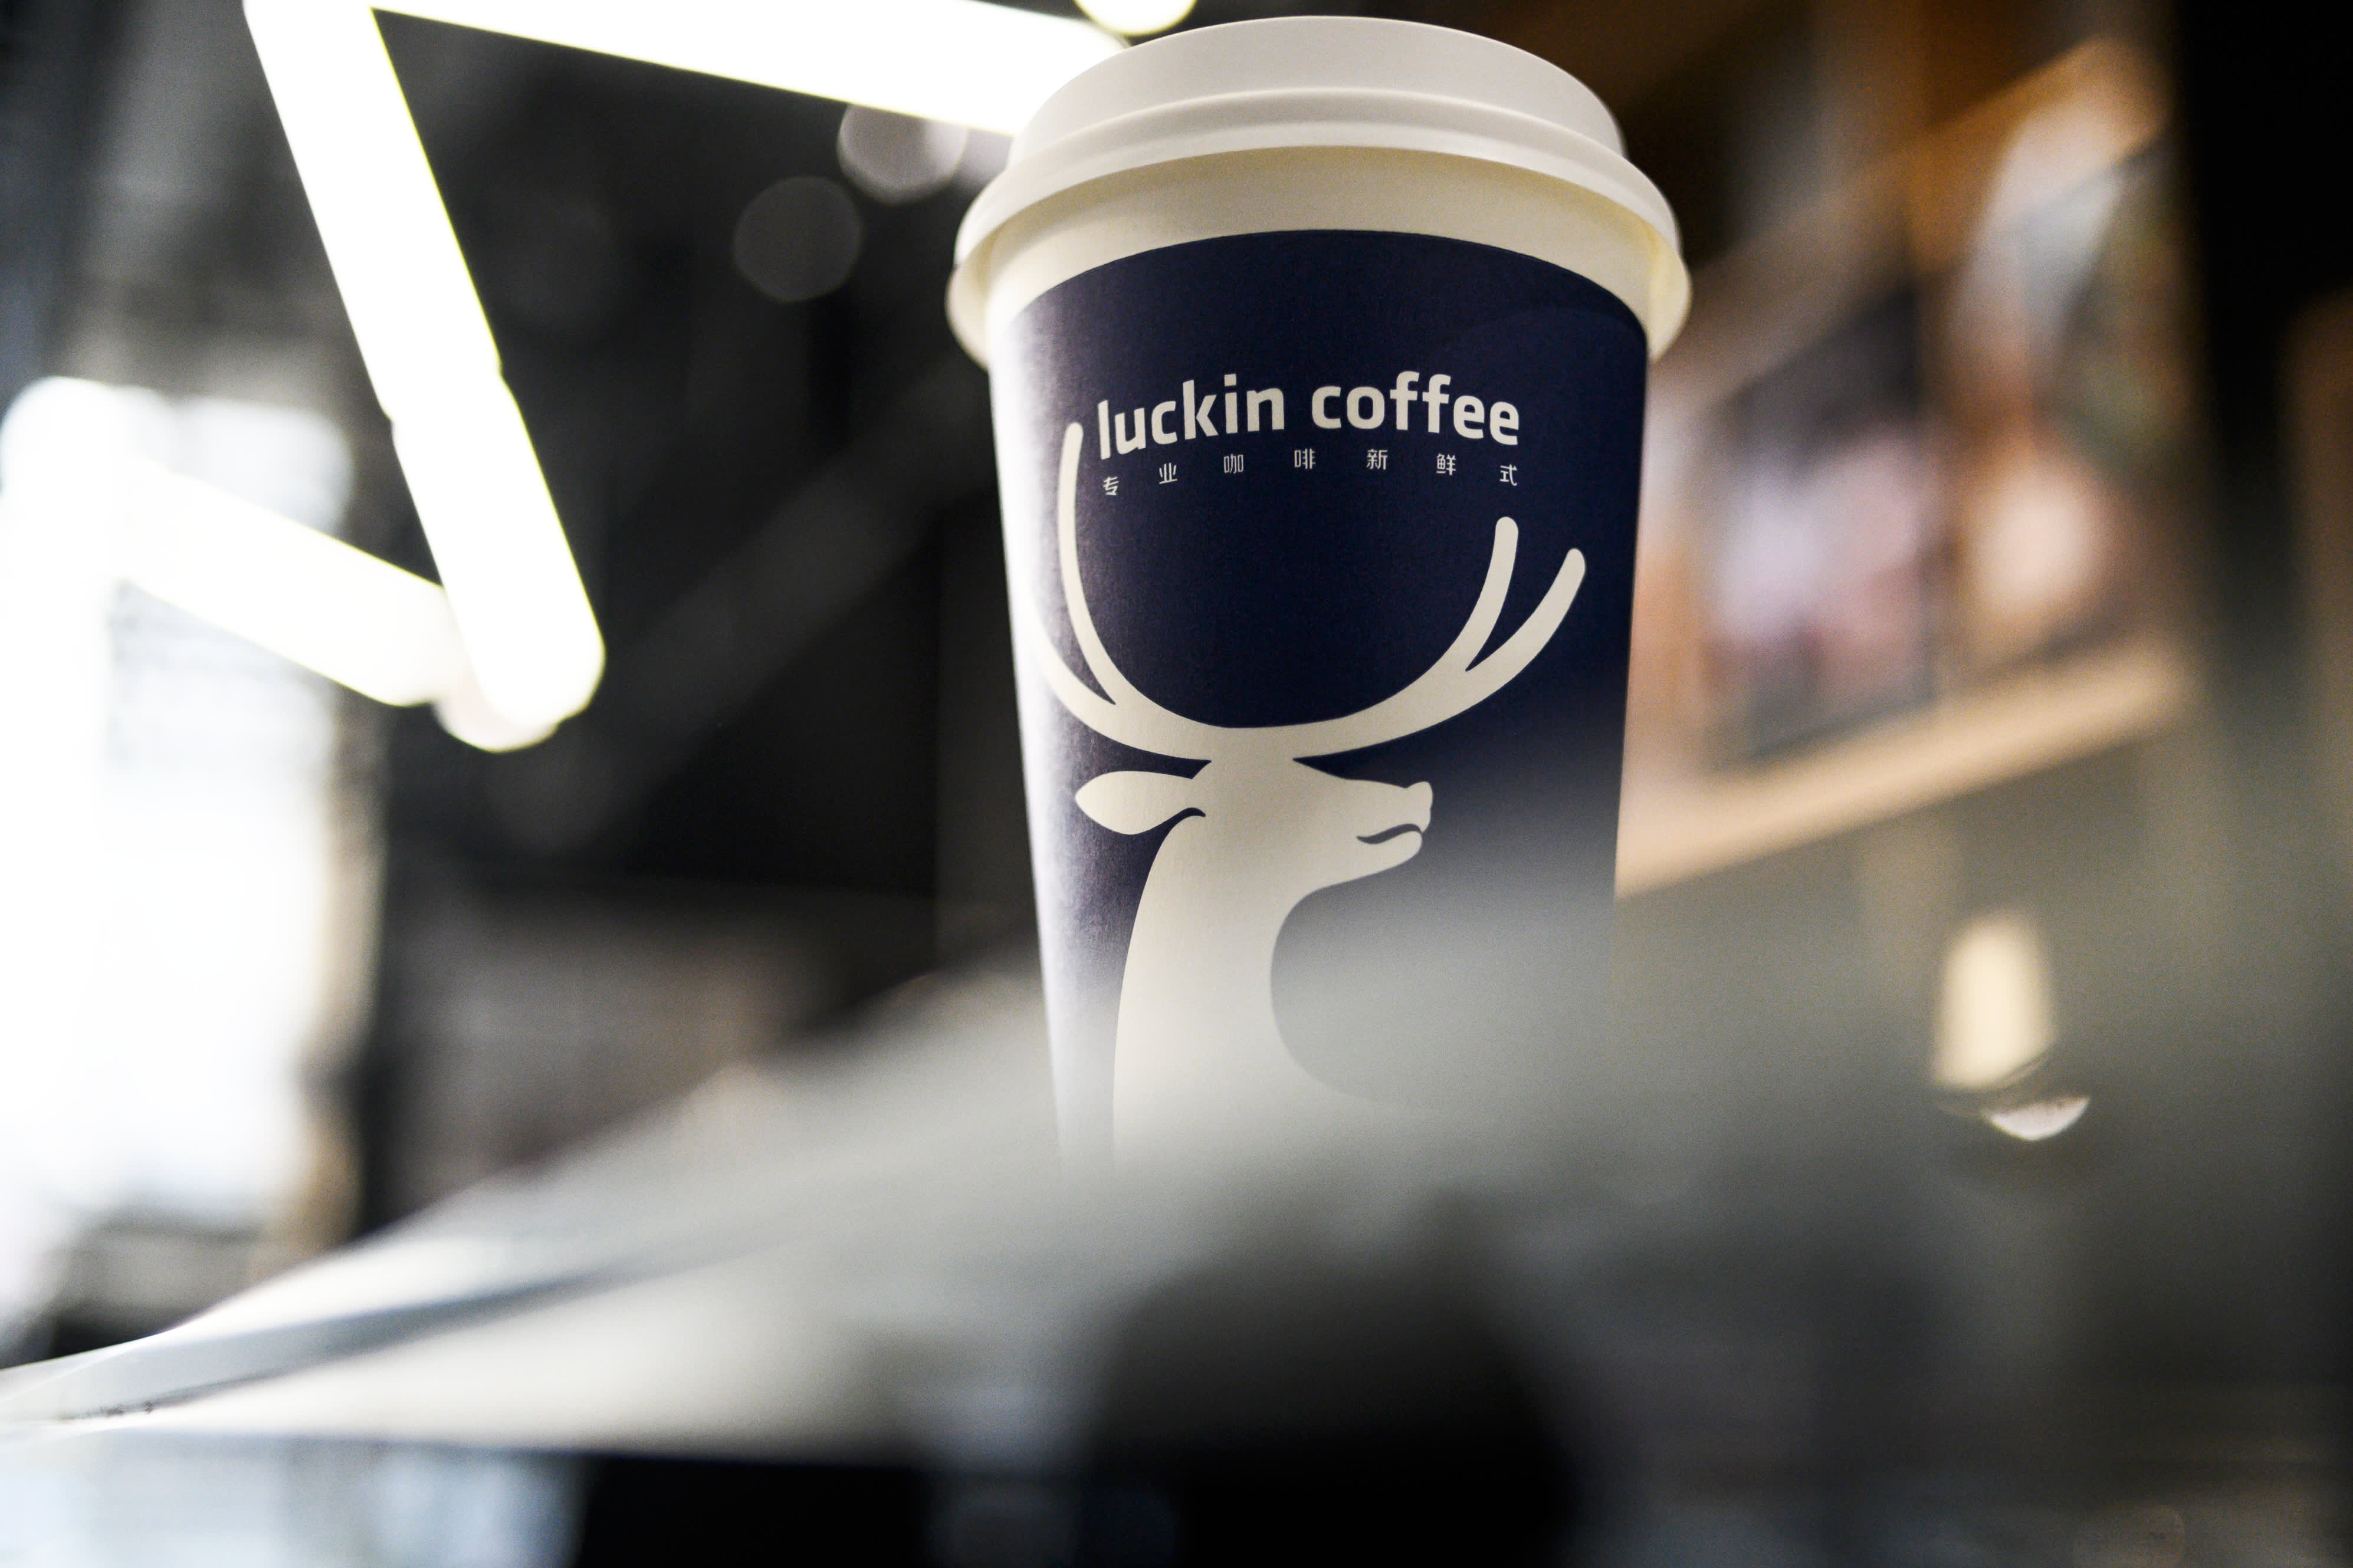 Wall Street sees major growth potential for Luckin in untapped Chinese coffee market